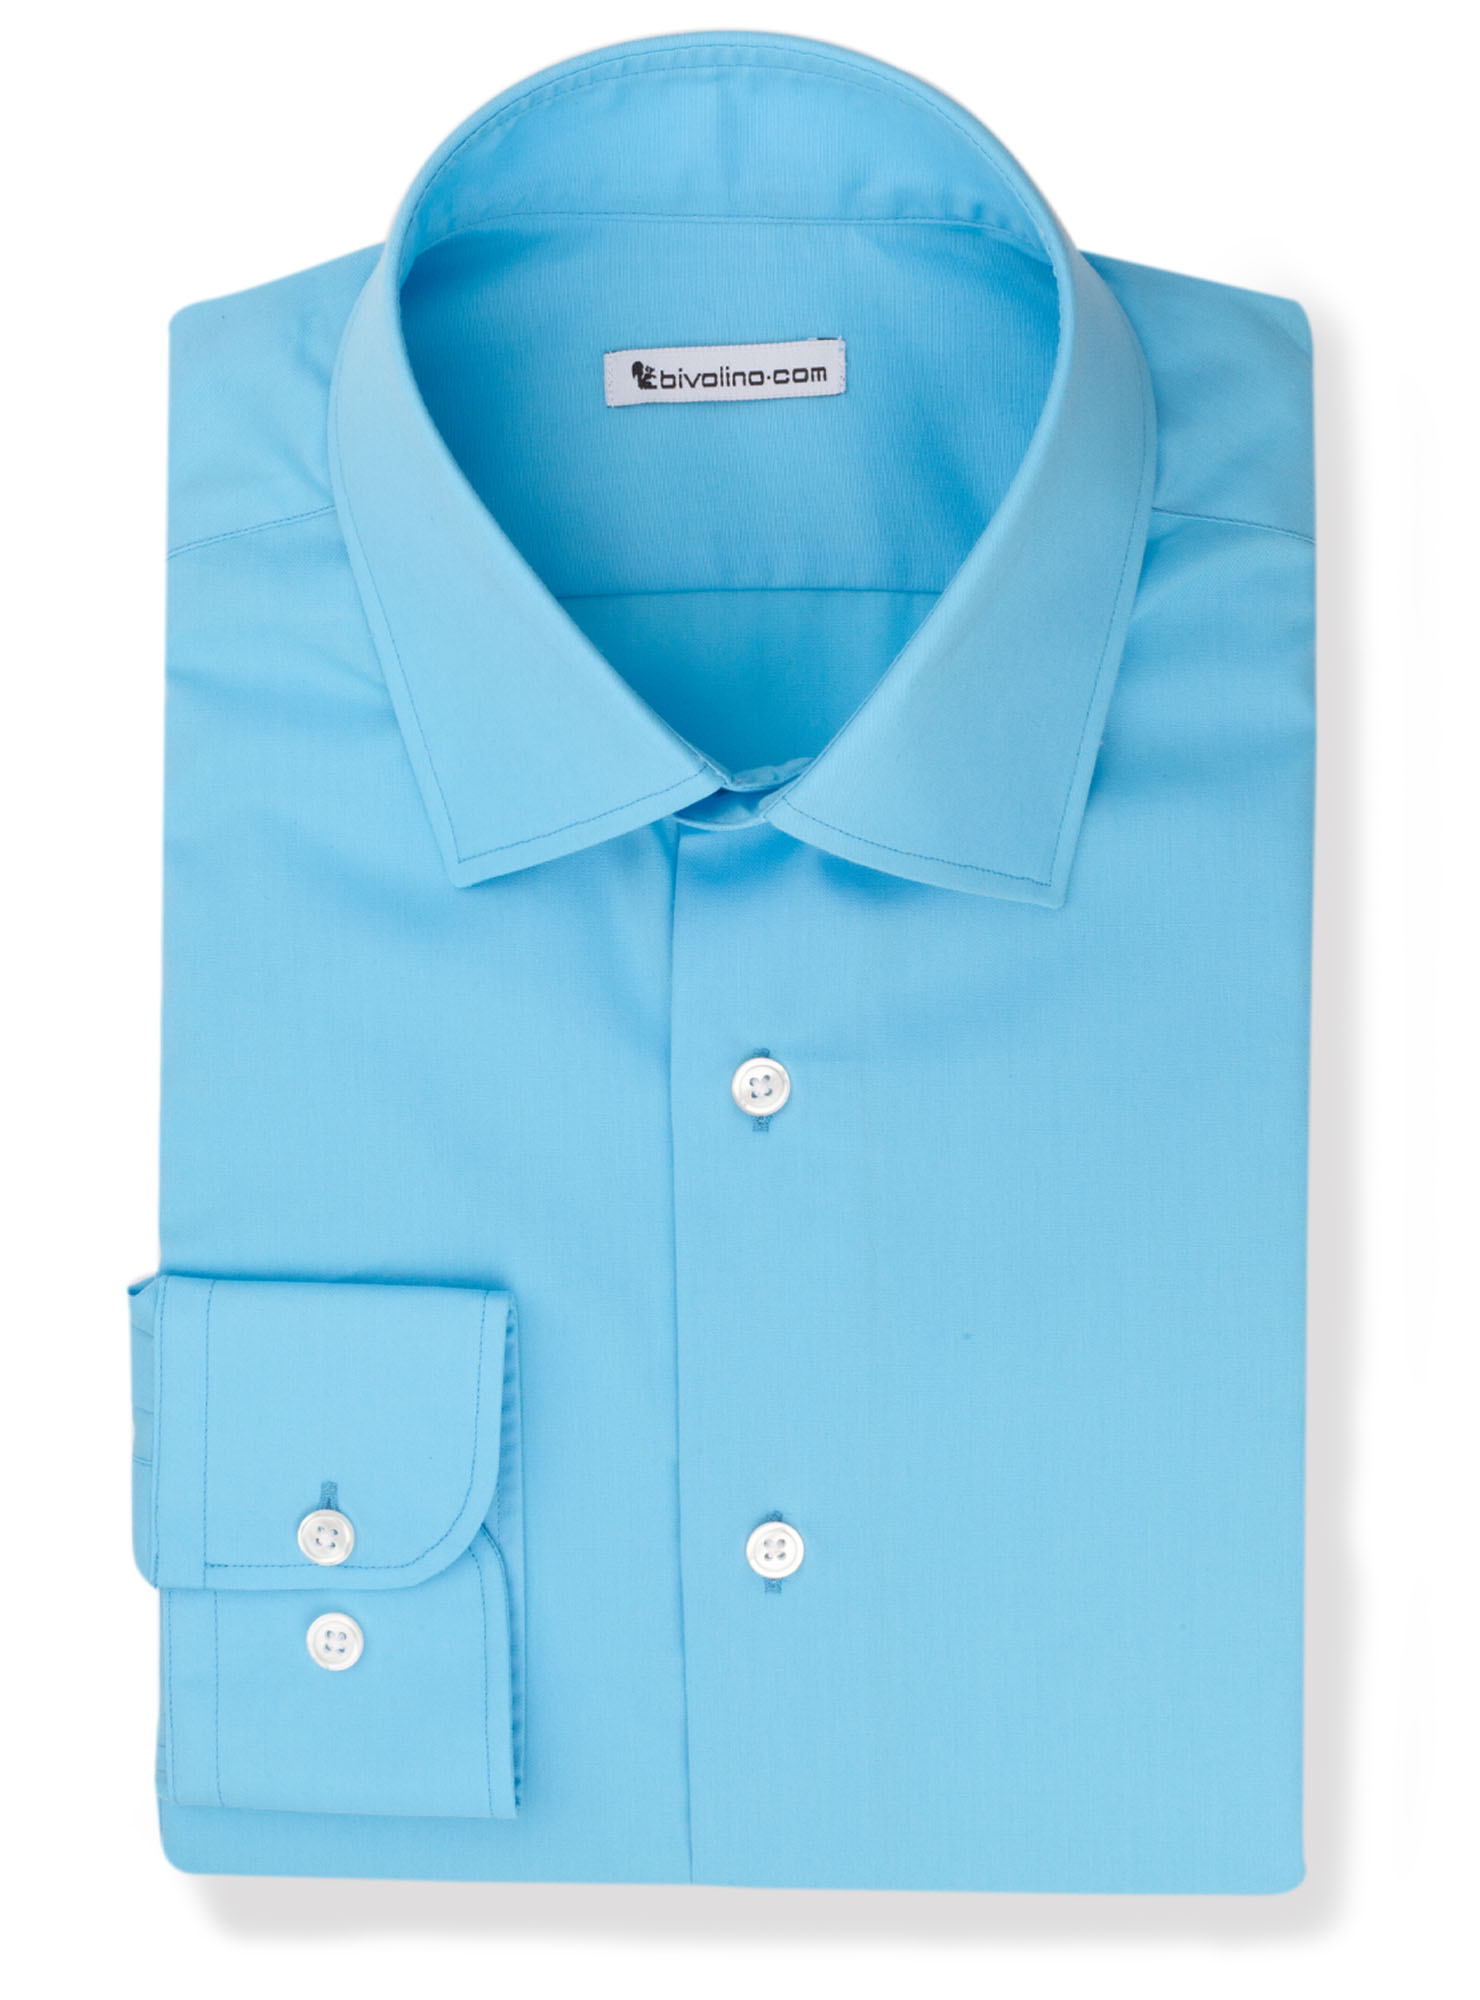 PERFO -  Turquoise poplin shirt easy-care - Brise 3